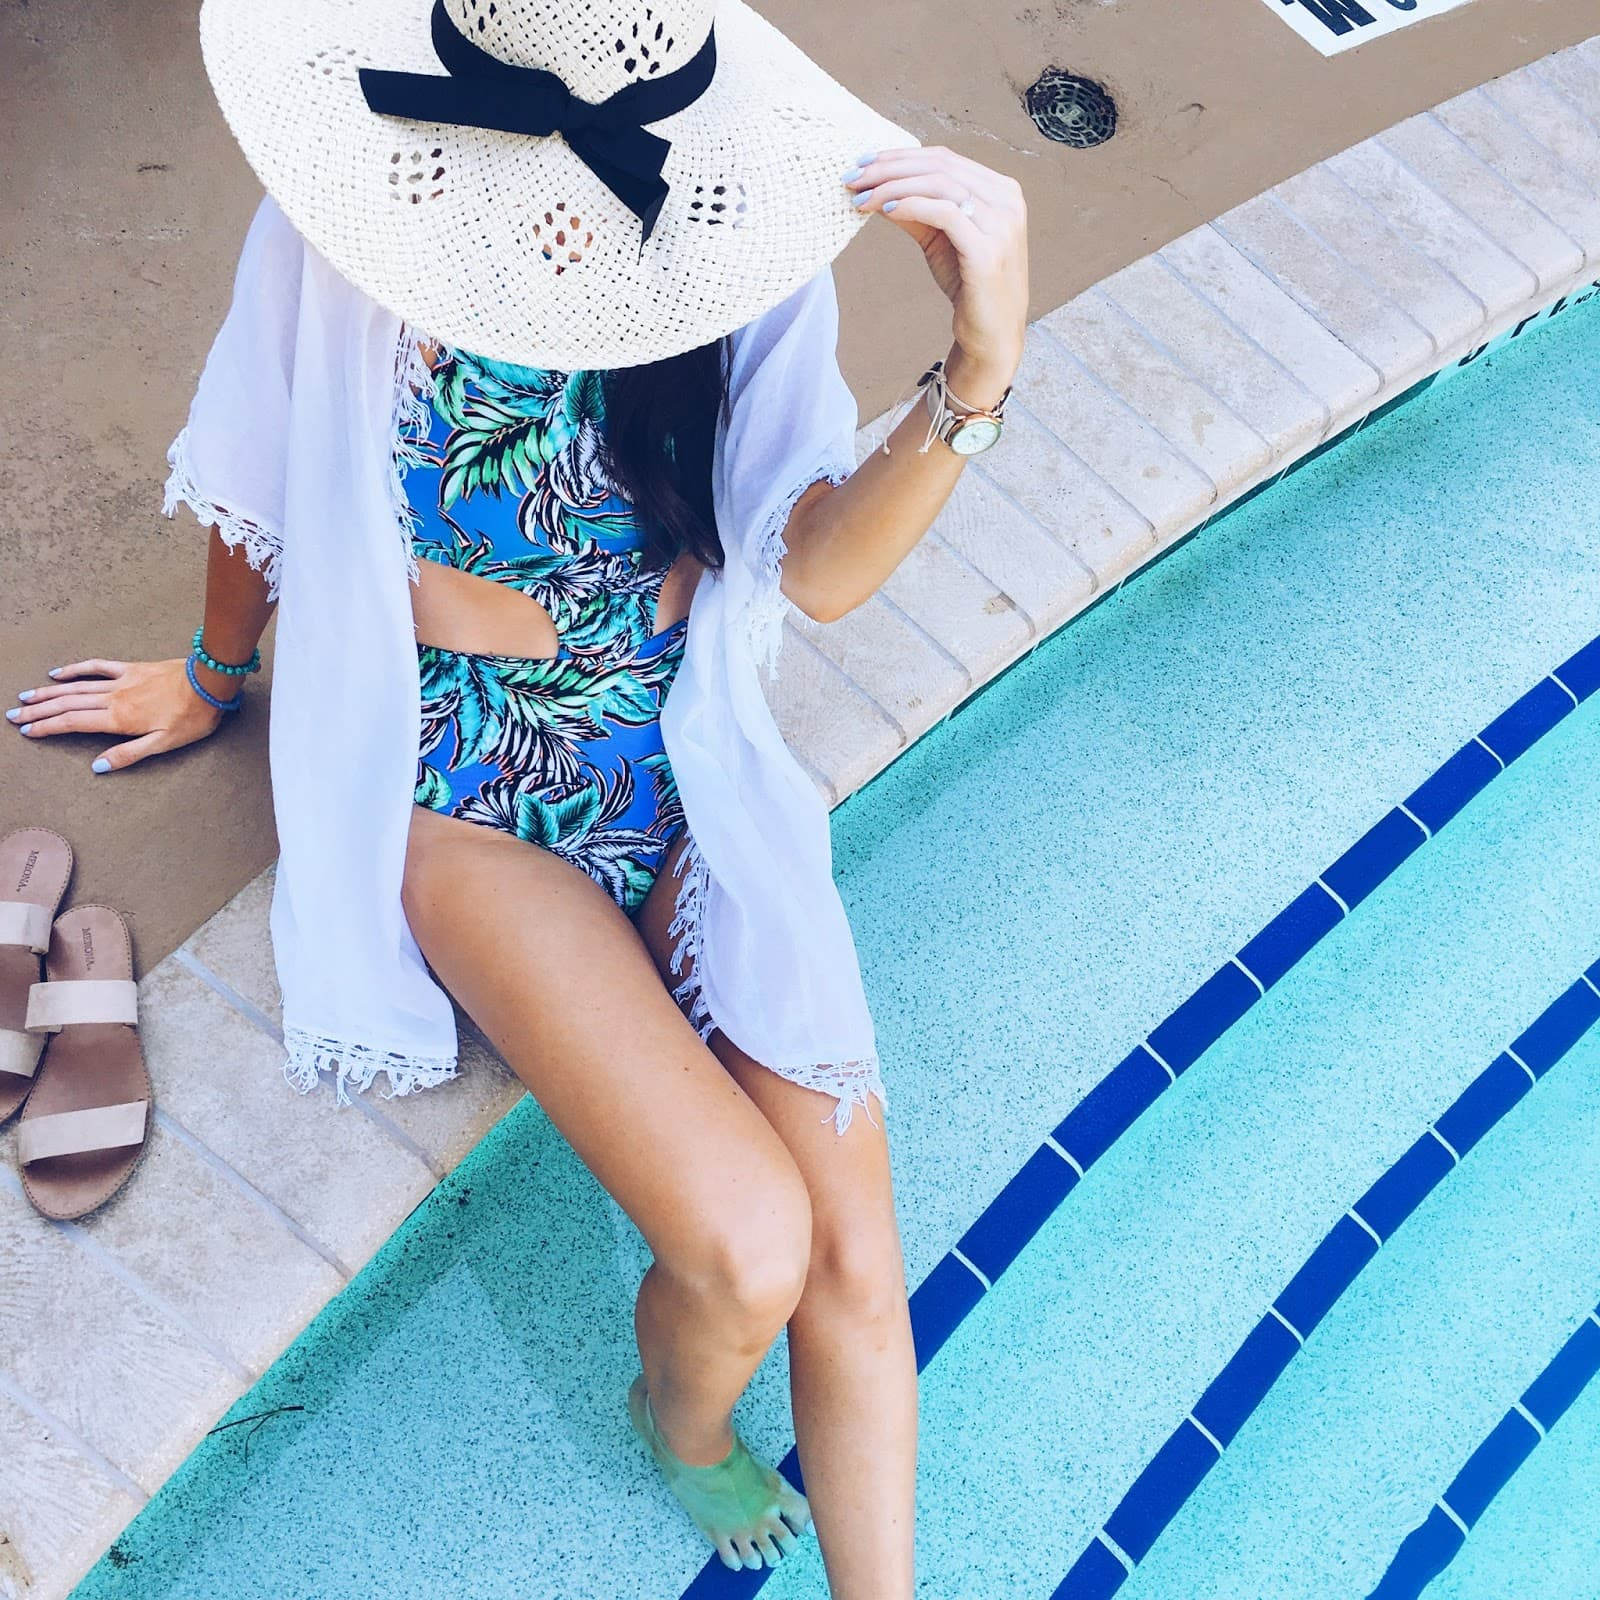 Latest Favorite Swimsuit Finds (and they're not bikinis!)